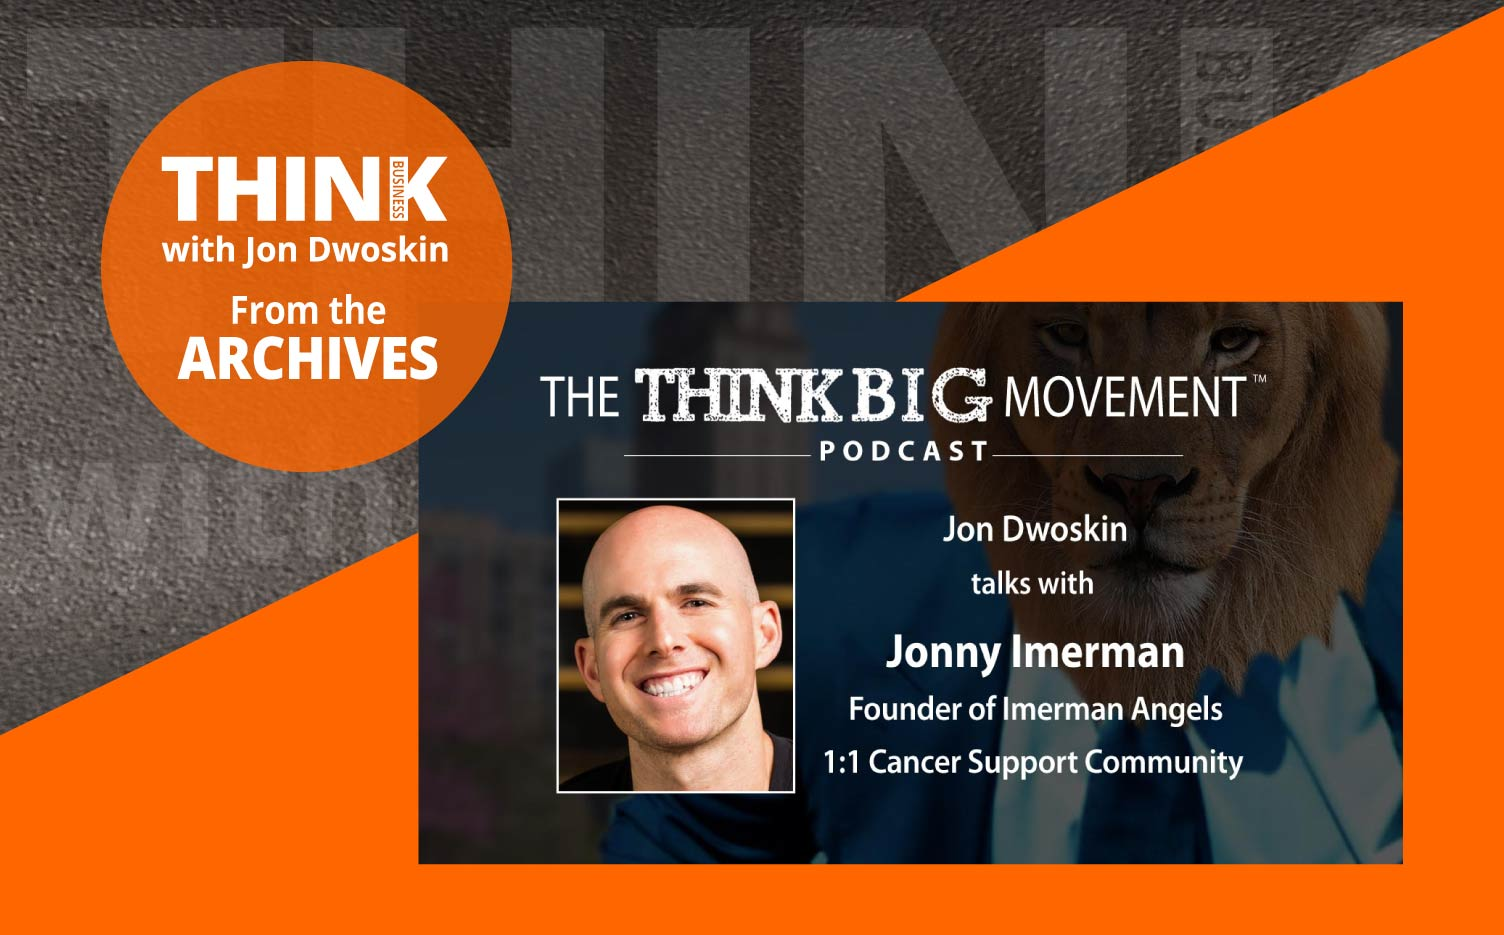 THINK Business Podcast: Jon Dwoskin Interviews Jonny Imerman